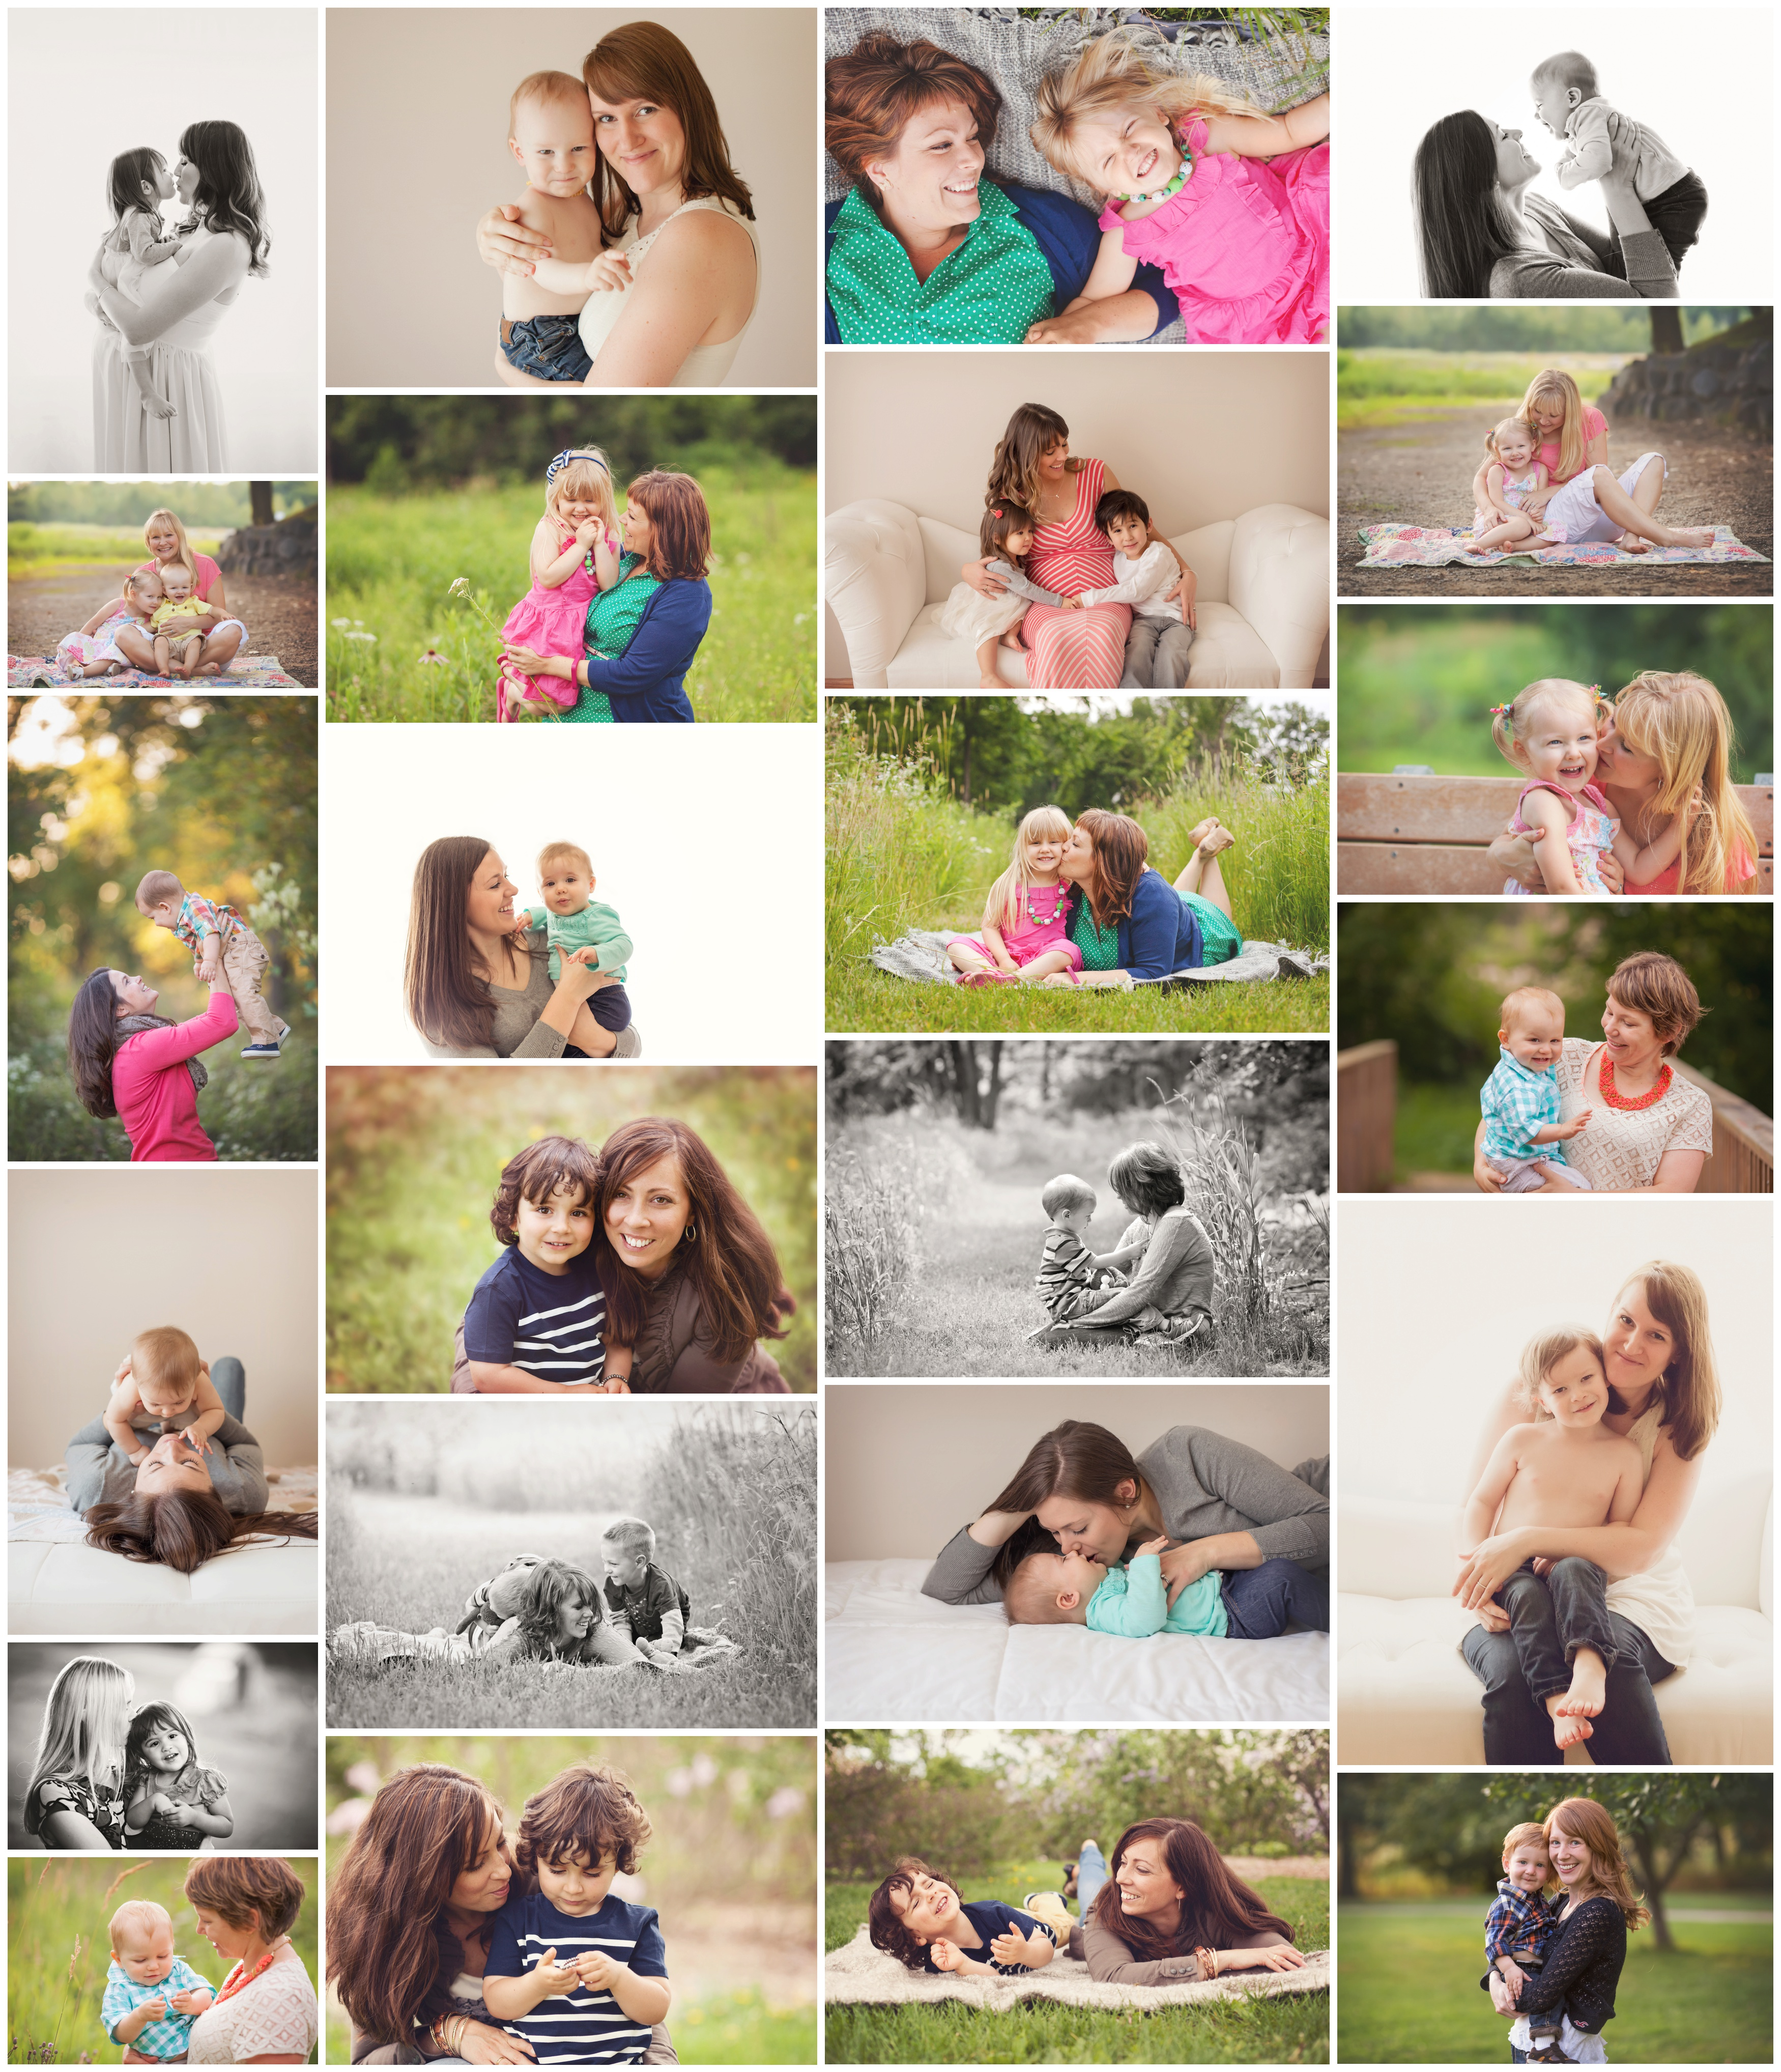 Madison WI baby photographer - mama and me mini sessions - Anna George Photography - www.annageorgephoto.com